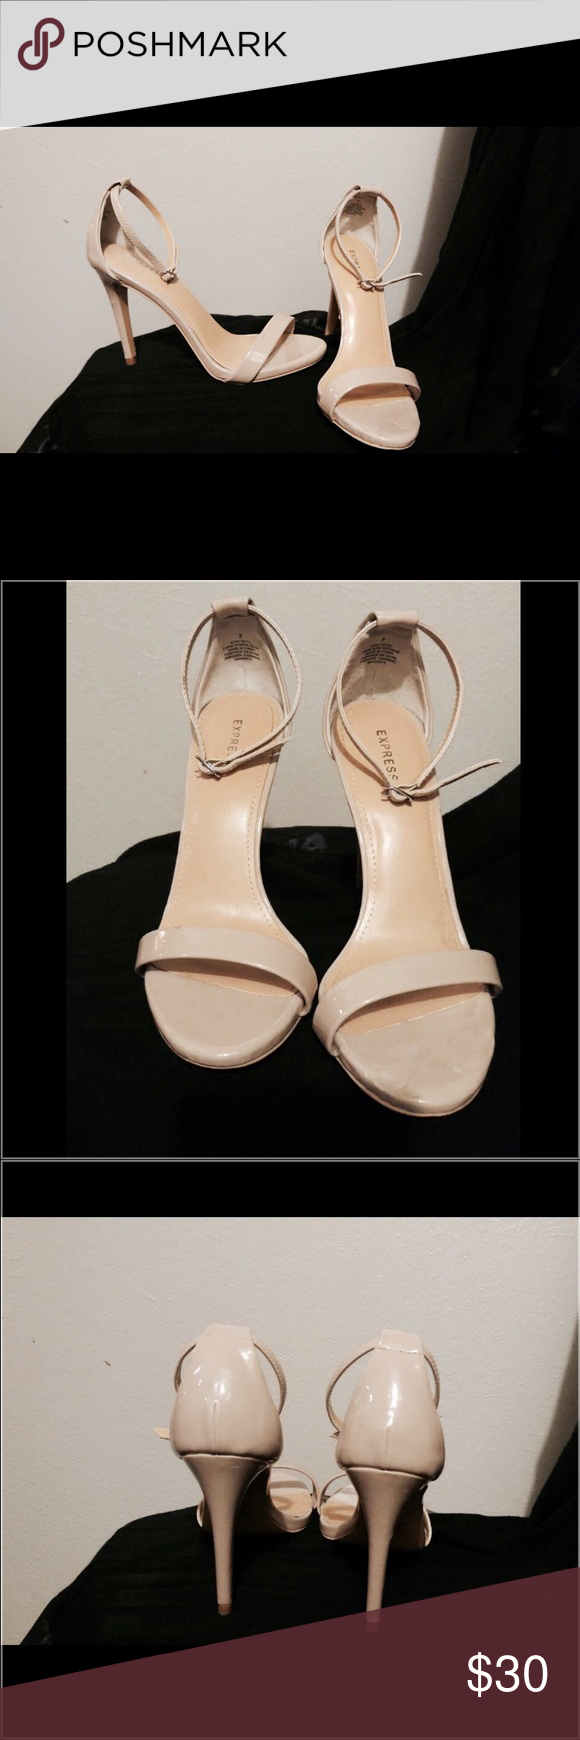 09f0080e6b7 Express Nude Strappy Heels Express nude strappy heels perfect for your next  holiday party! These